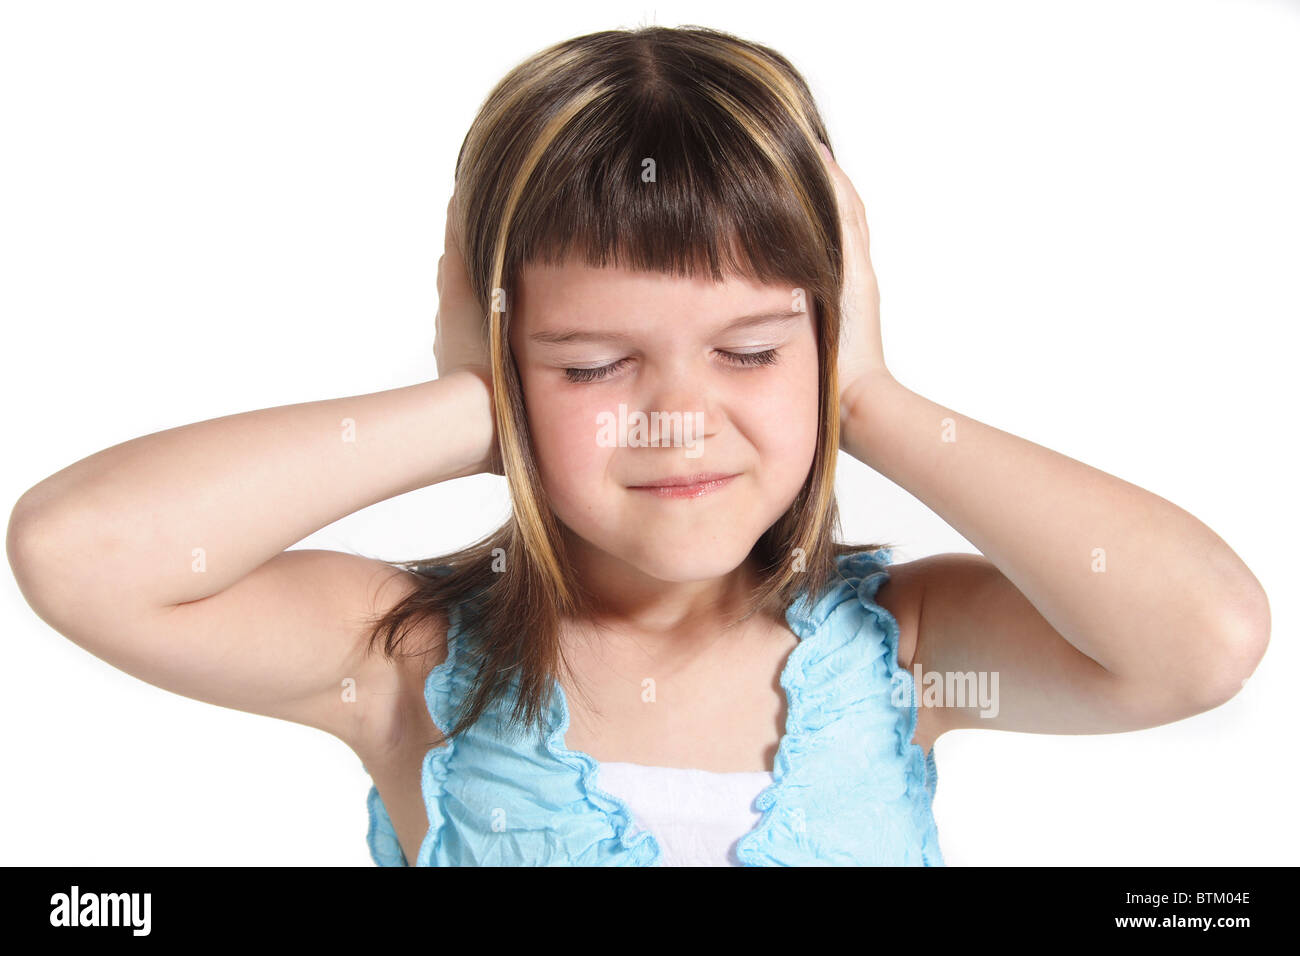 A young girl suffering from noise. All isolated on white background. - Stock Image